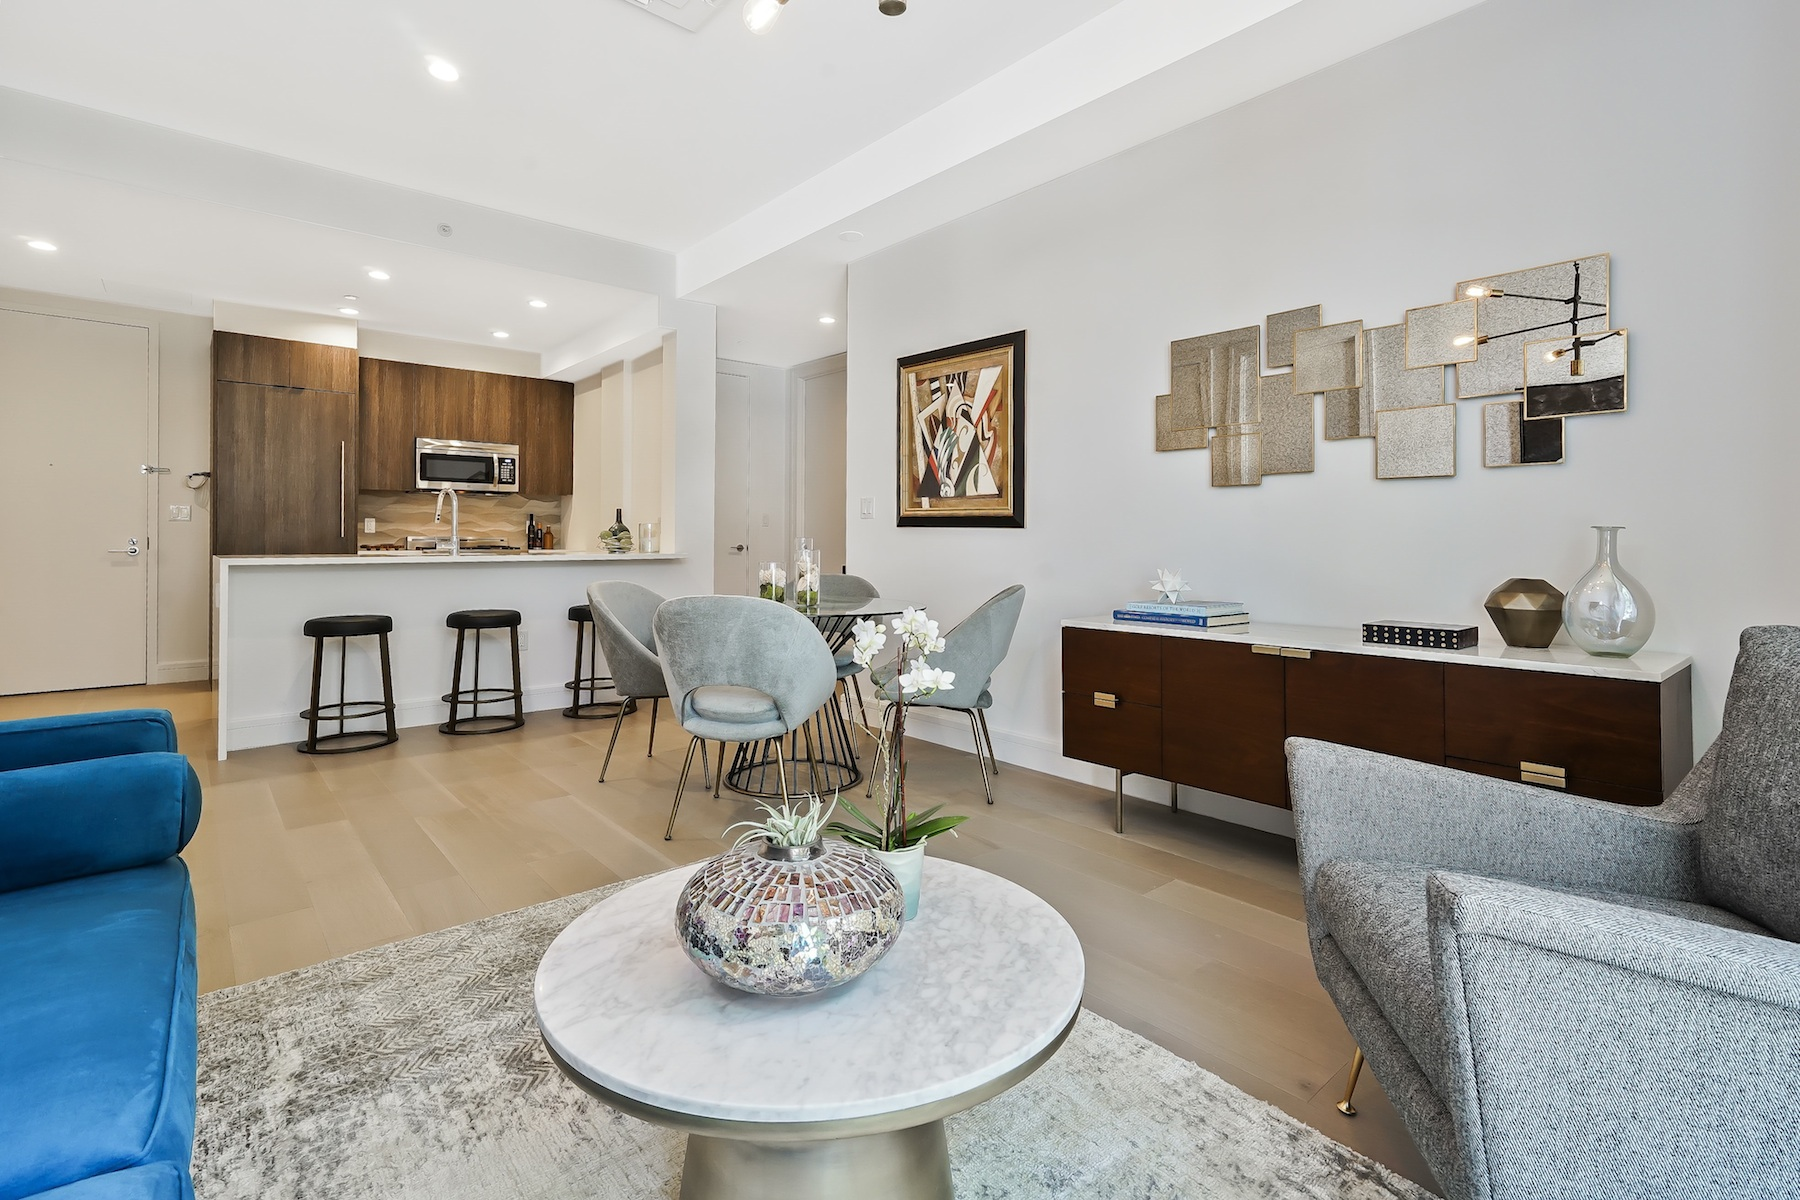 Additional photo for property listing at Stanton on Sixth 695 6th Avenue 2D Brooklyn, New York 11215 United States